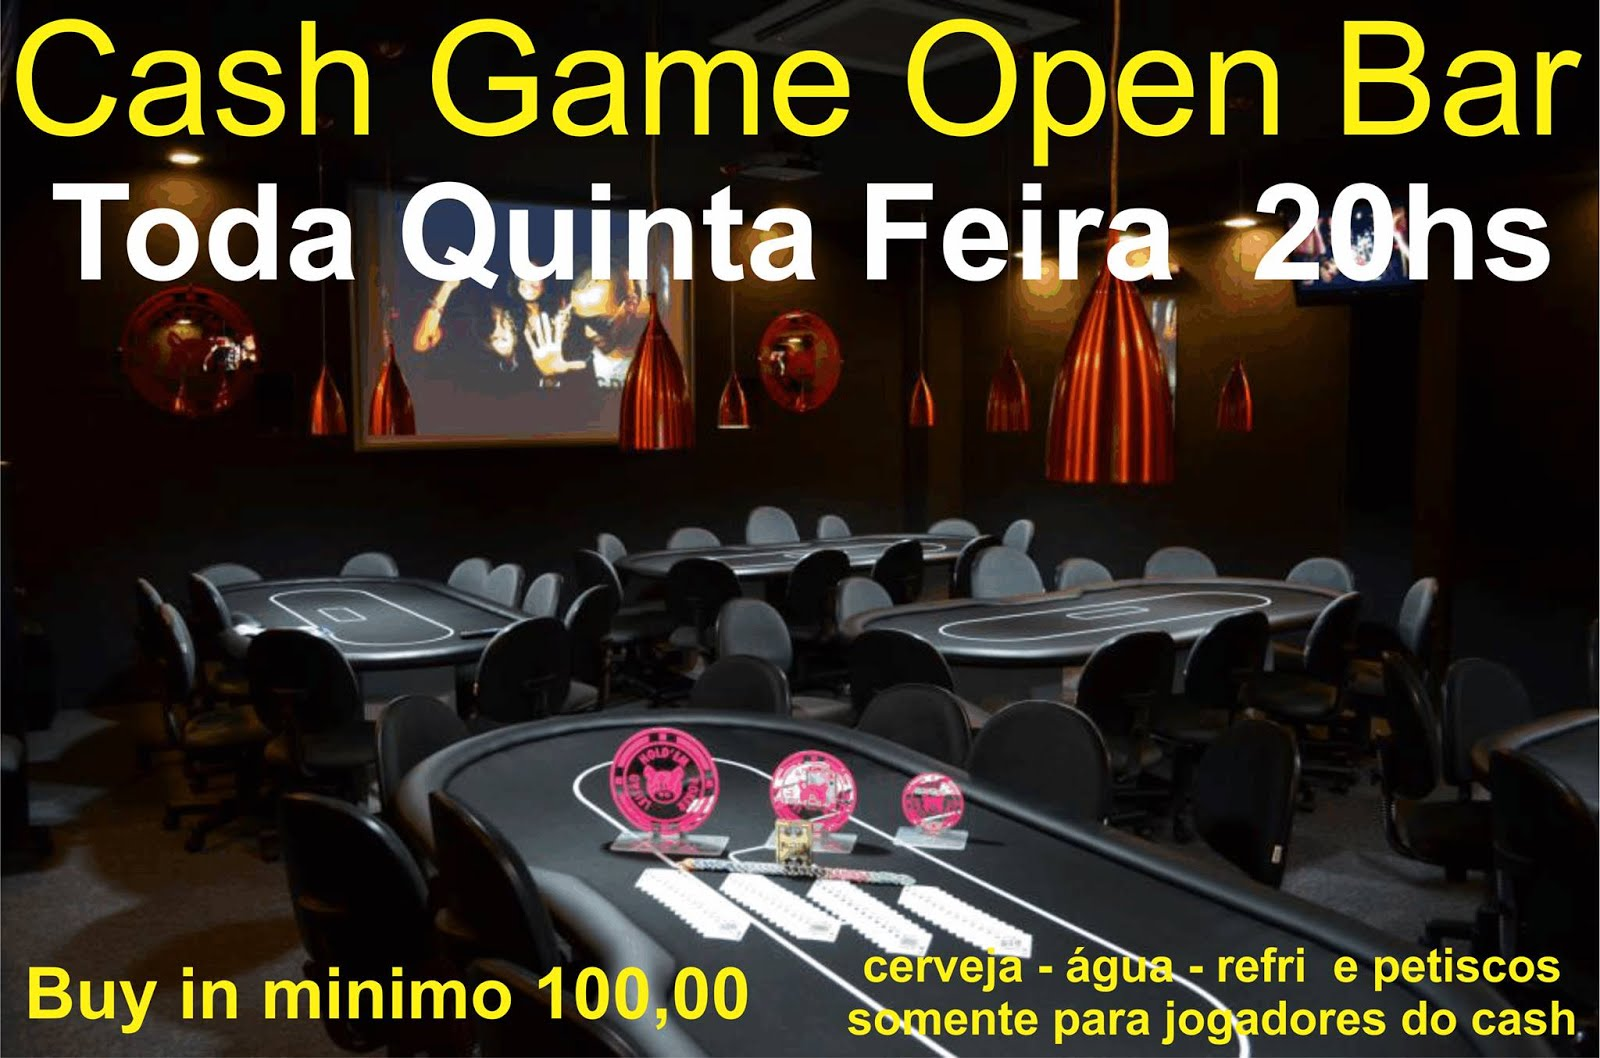 TODA QUINTA FEIRA CASH GAME OPEN BAR